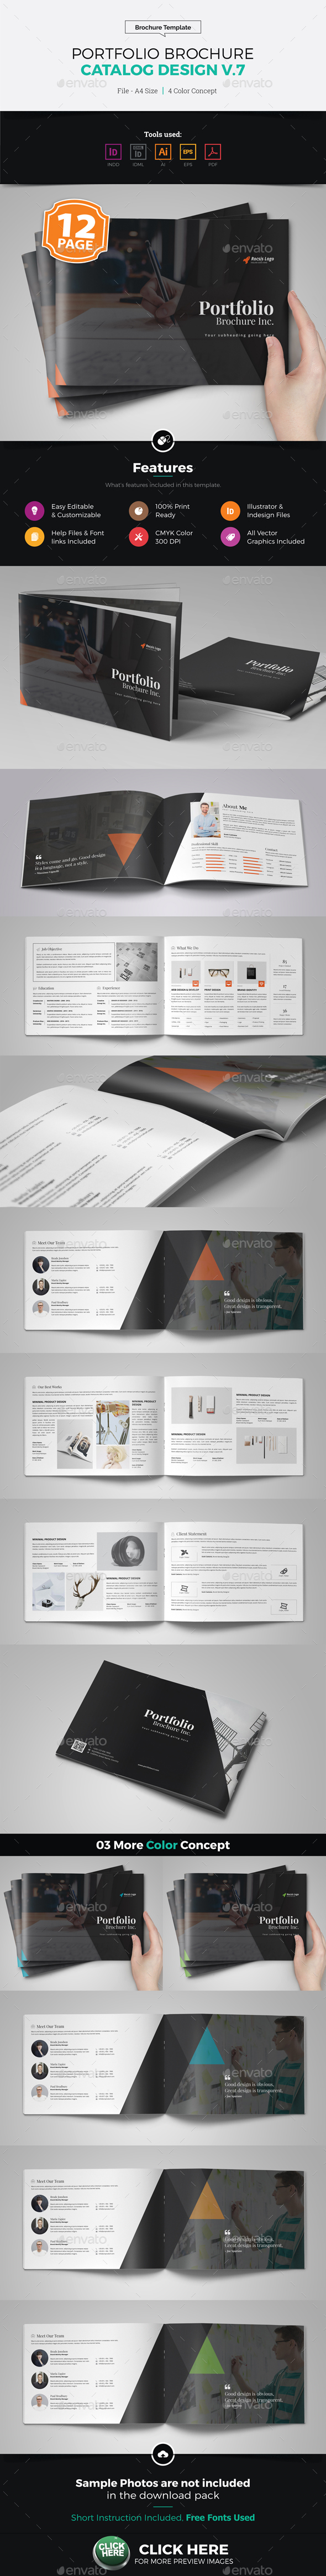 Portfolio Brochure Catalog Design v7 - Corporate Brochures